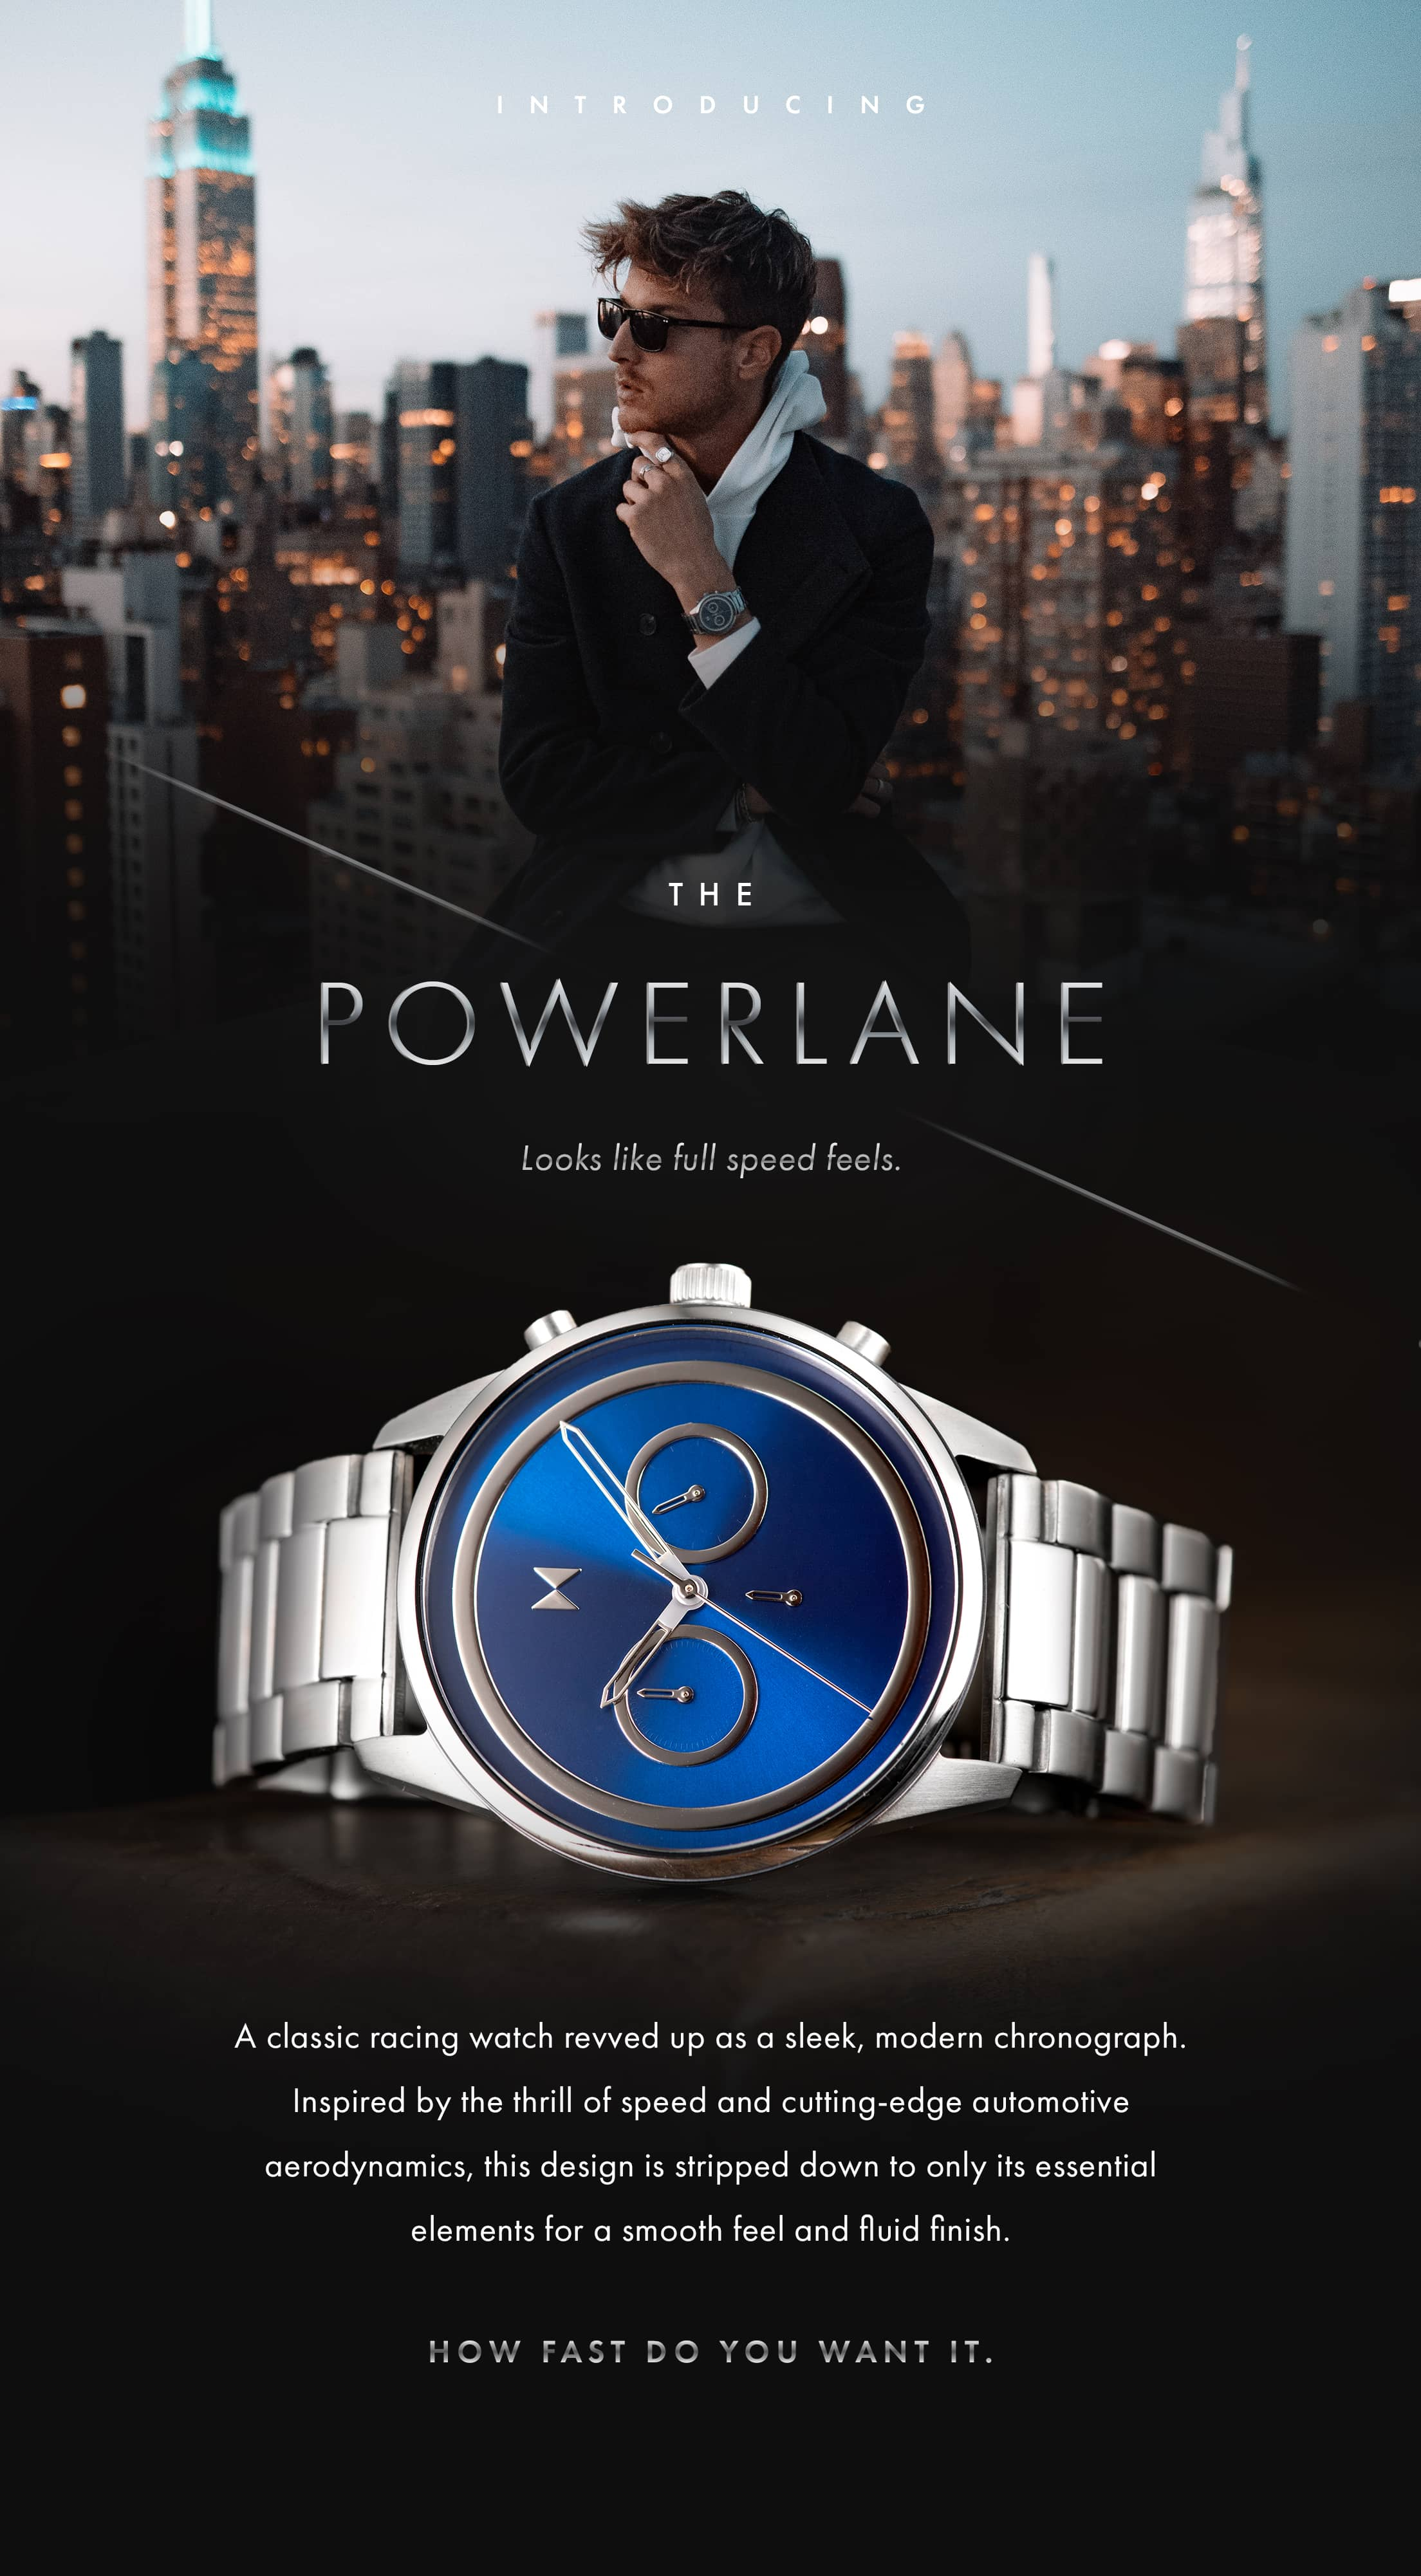 Introducing the Powerlane. Looks like full speed feels. A classic racing watch revved up as a sleek modern chronograph. Inspired by the thrill of speed and cutting-edge automotive aerodynamics, this design is stripped down to only its essential elements for a smooth feel and fluid finish. How fast do you want it.